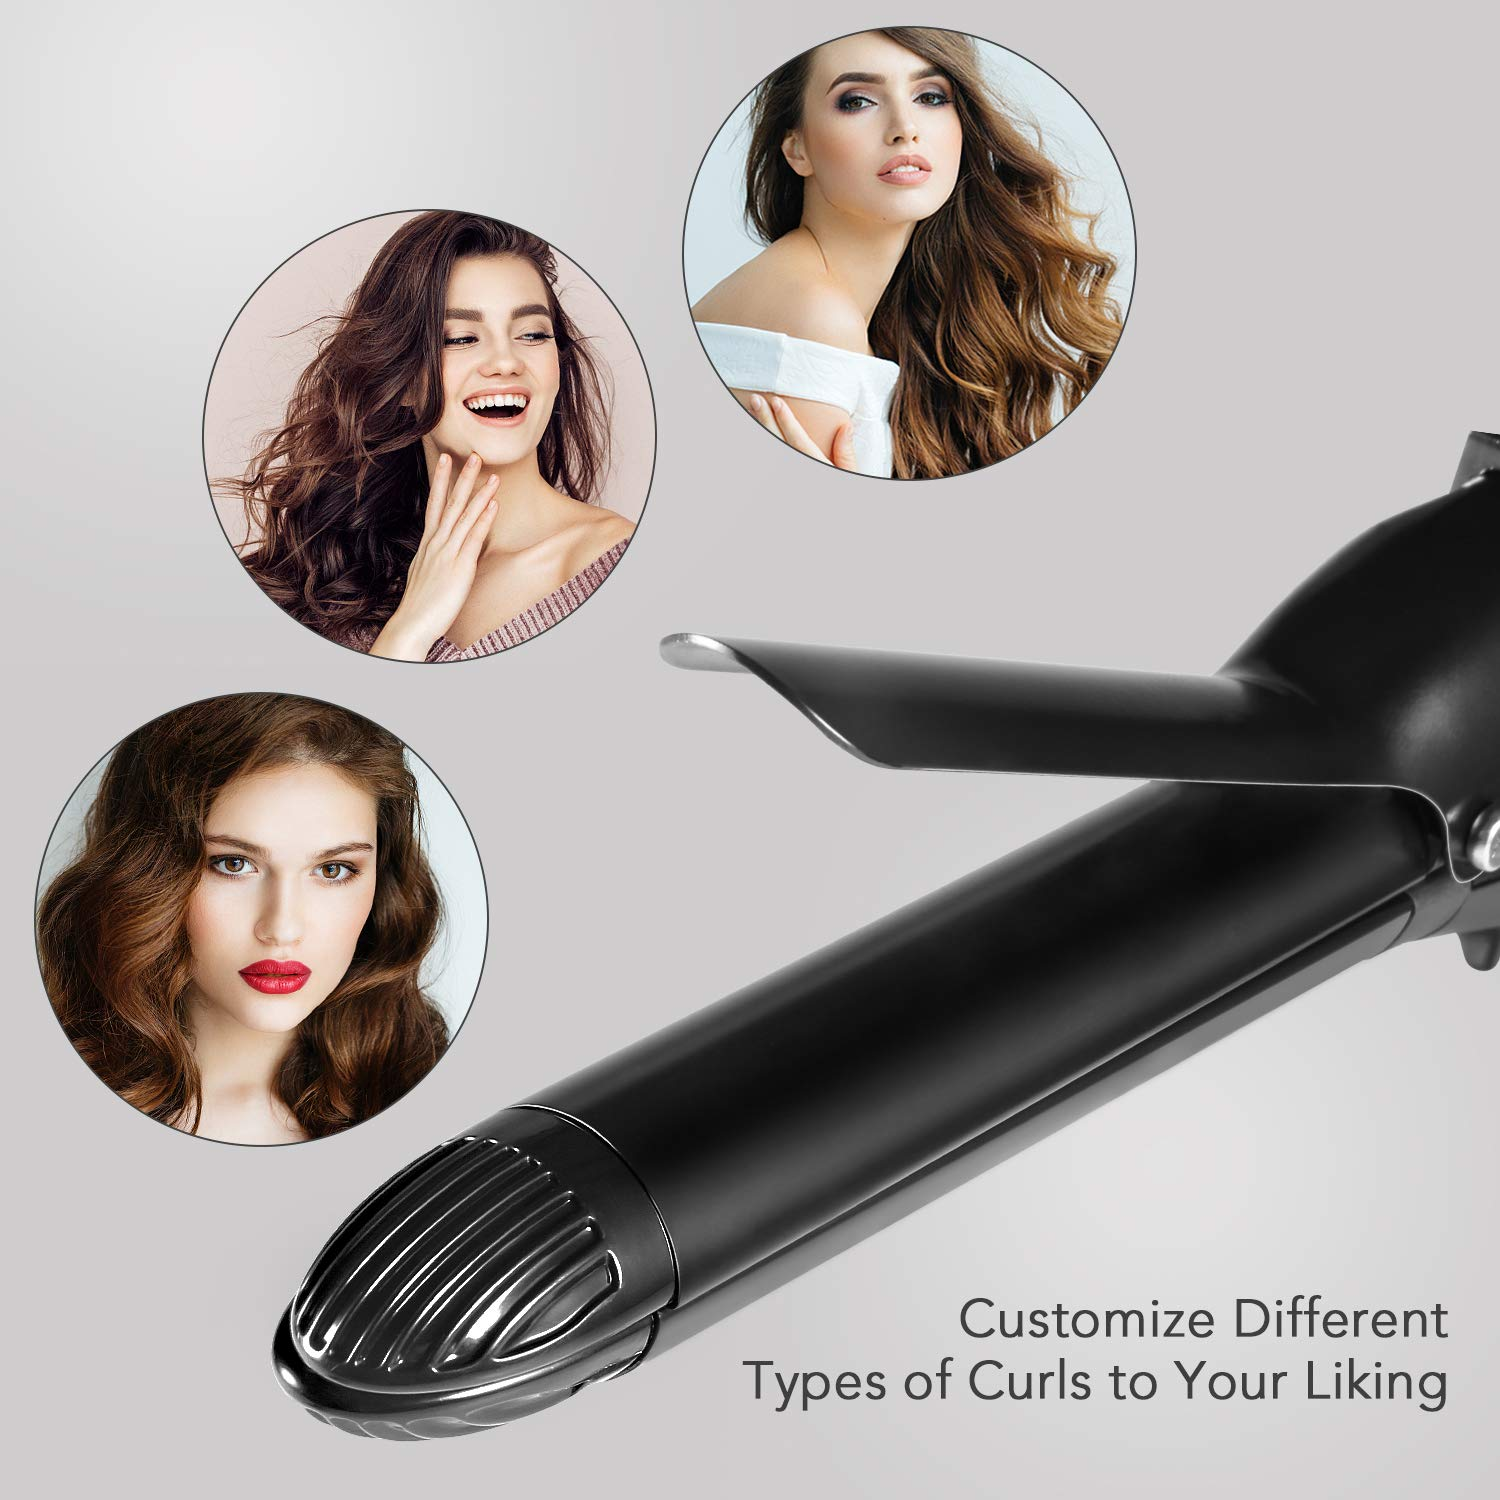 ... Hair Straightener 2 in 1 Curling Iron Styling Wand Hair Curler with Adjustable Temperature Ceramic Coating Fast Heating Technology MARNUR: Beauty